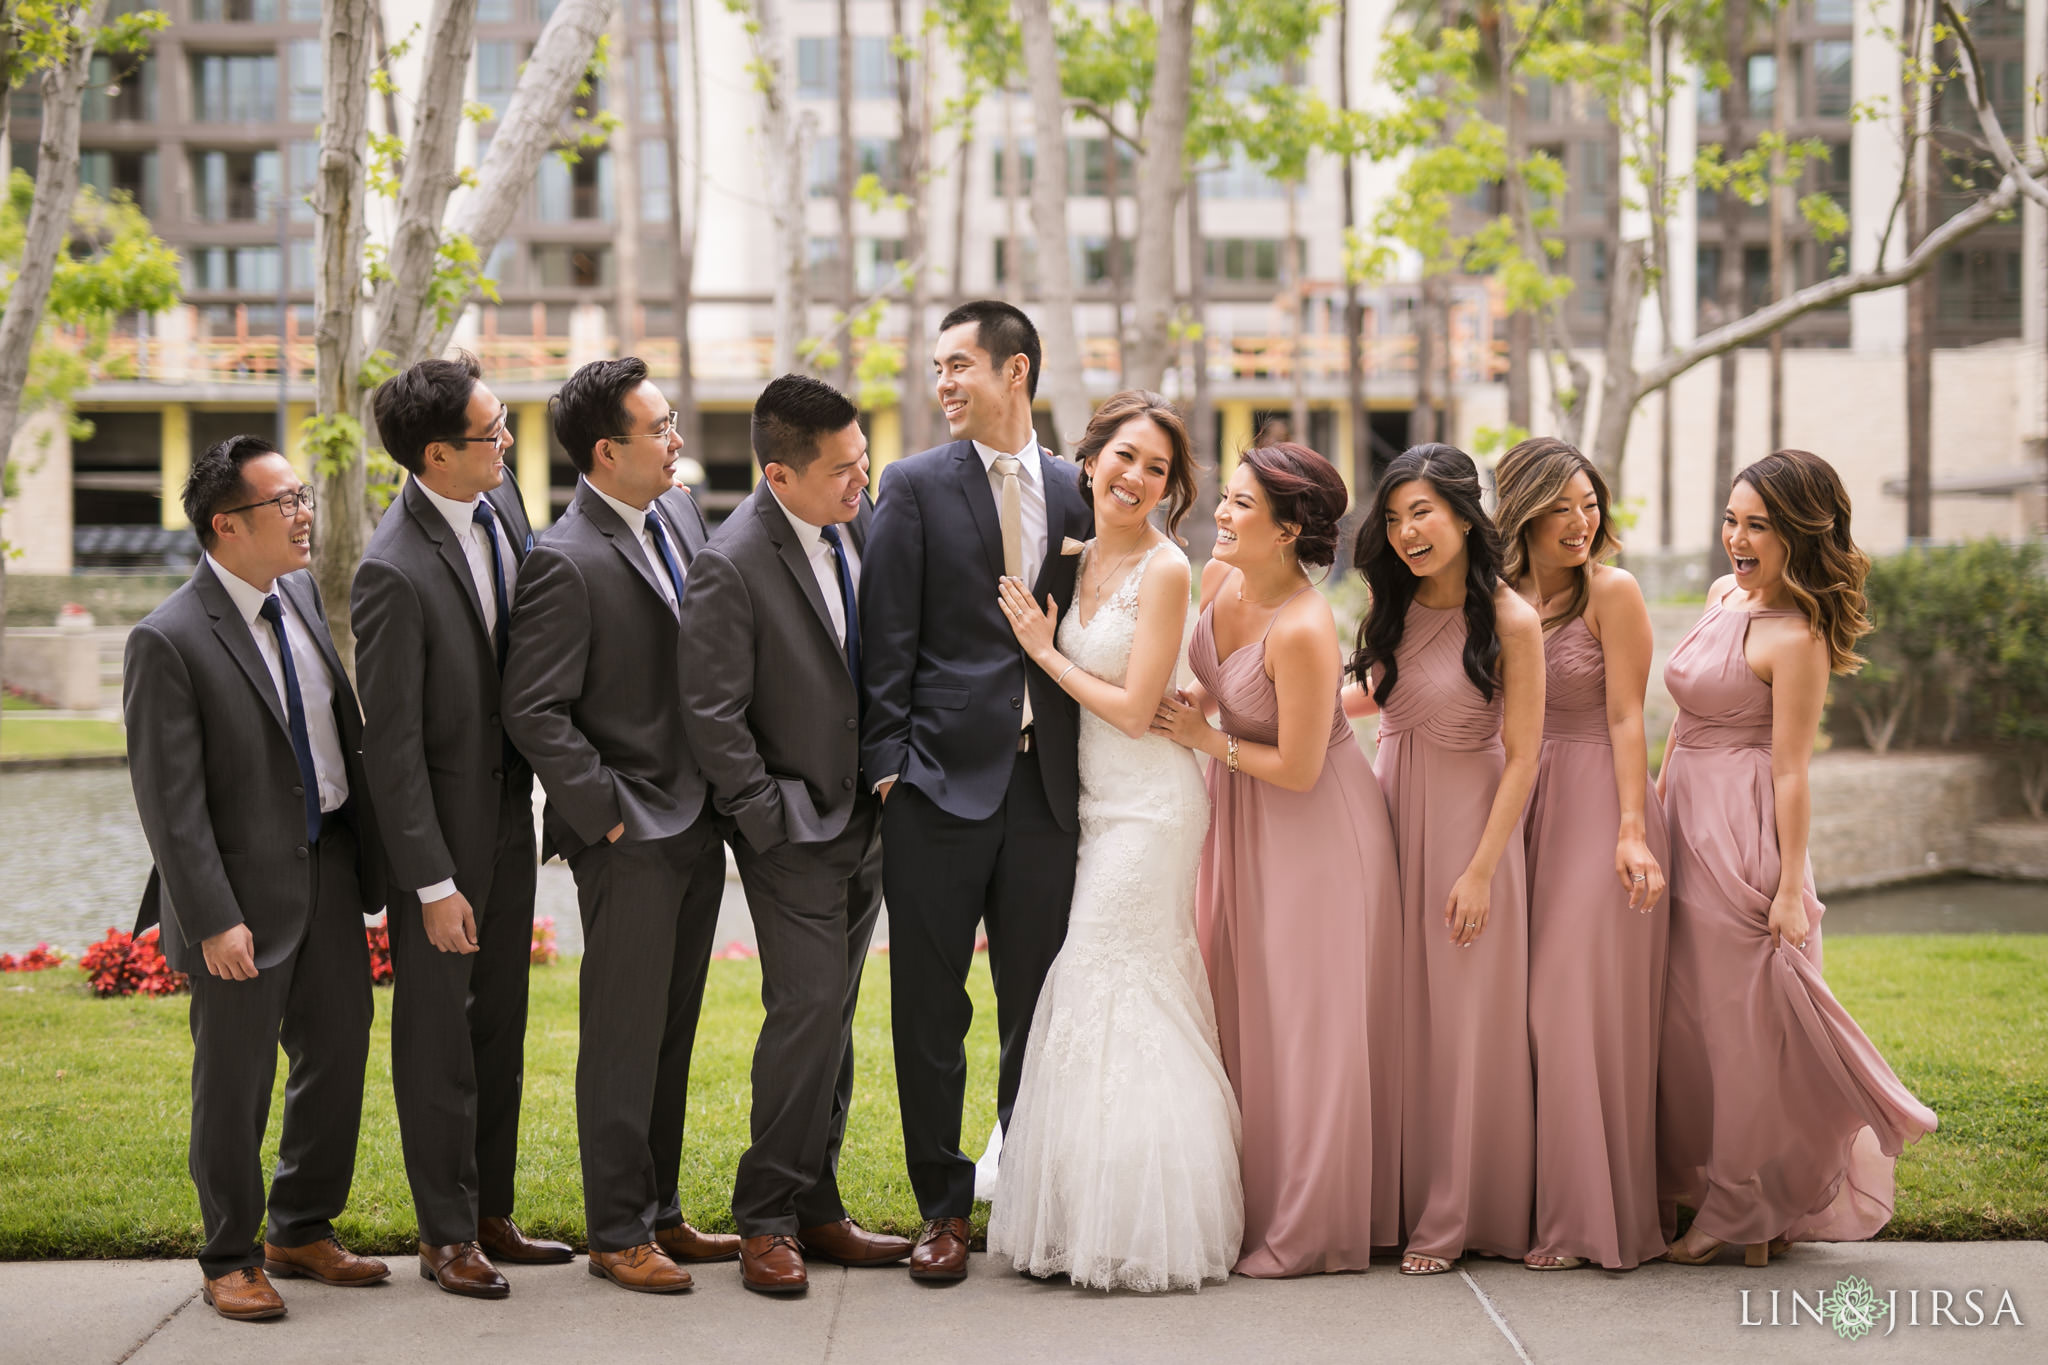 15 turnip rose promenade orange county wedding party photography